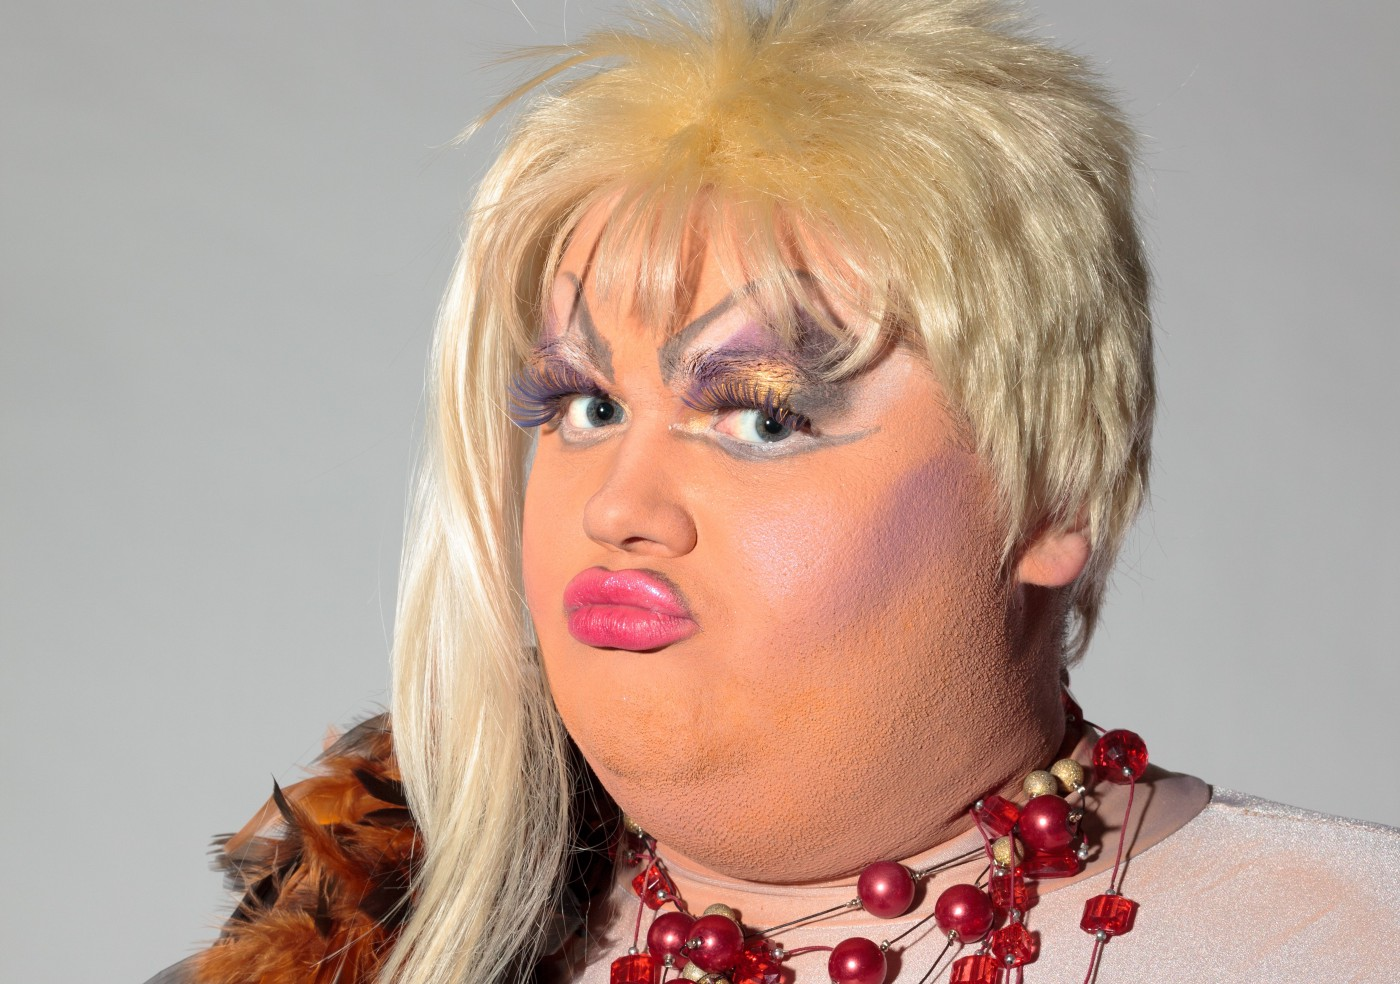 Chubby drag qeen in blonde wig